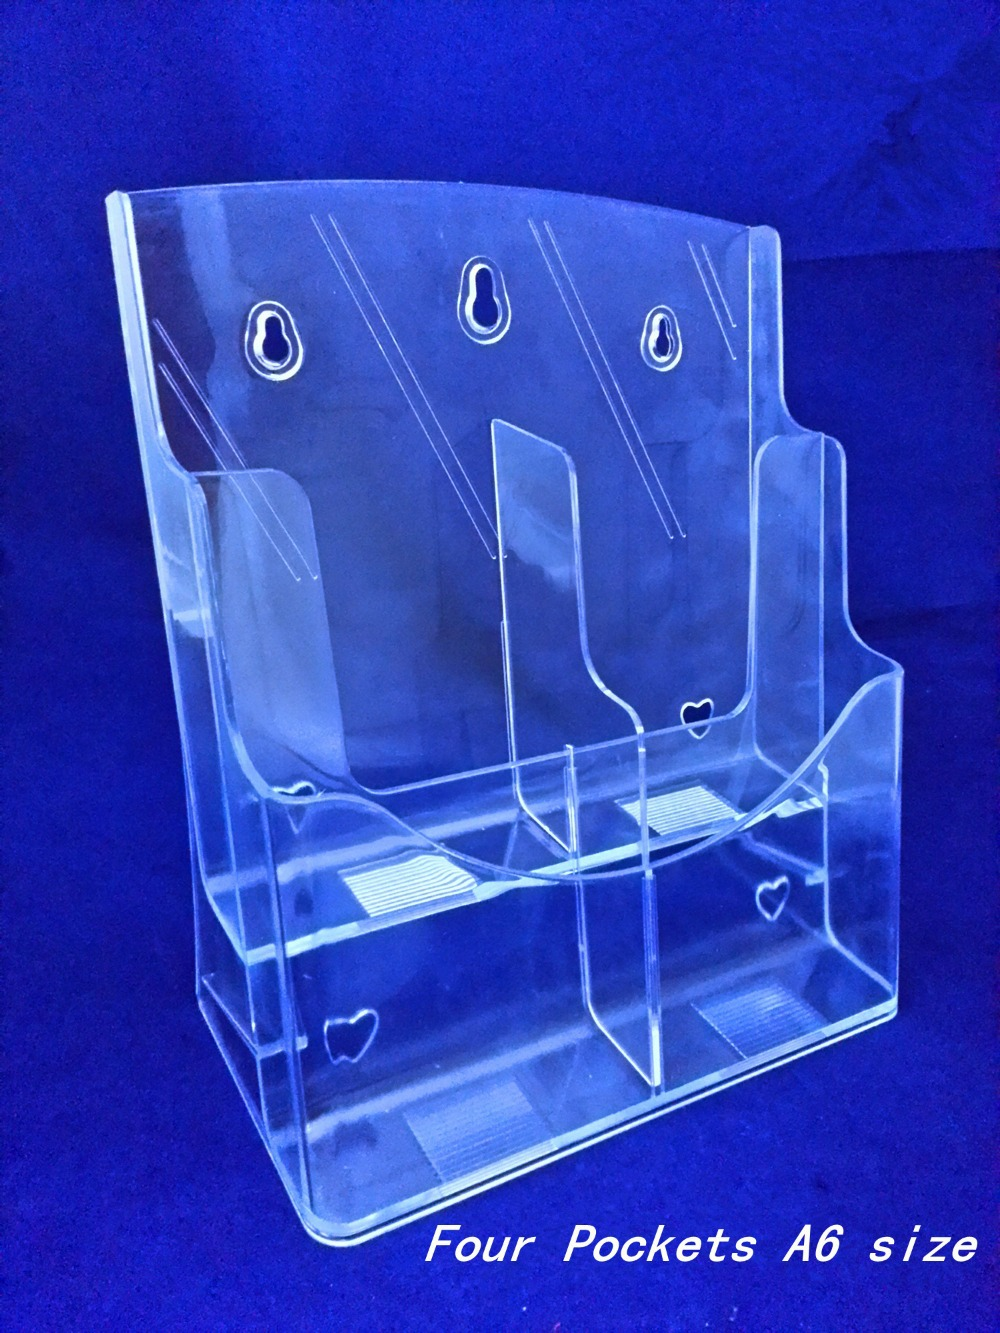 Clear A6 Four Pockets Plastic Acrylic Brochure Literature Pamphlet Display Holder Racks Stand To Insert Leaflet 30pcs a4 4 layer half page brochure holder book data file holder display rack acrylic data file brochure display stand